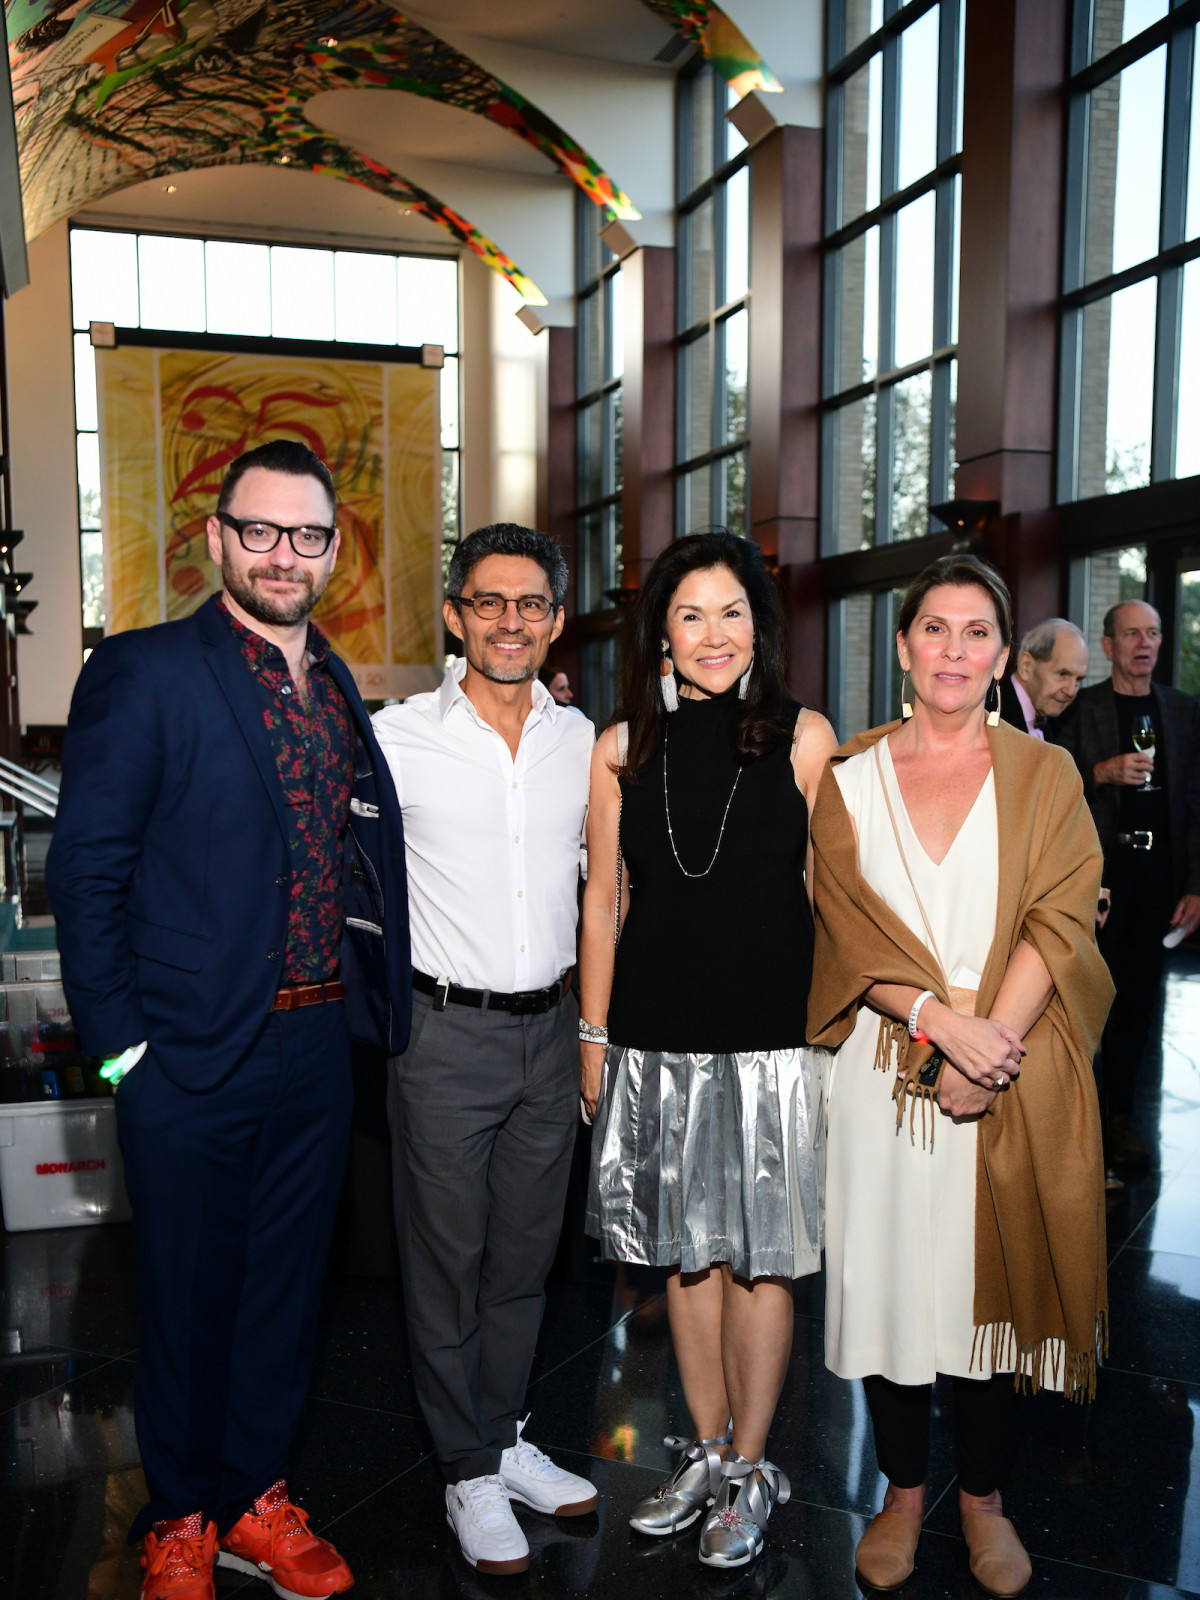 UH Public Art 50th Celebration: John Abodeely, Jose Contreras-Vidal, Geraldina Wise, Lee Steffy